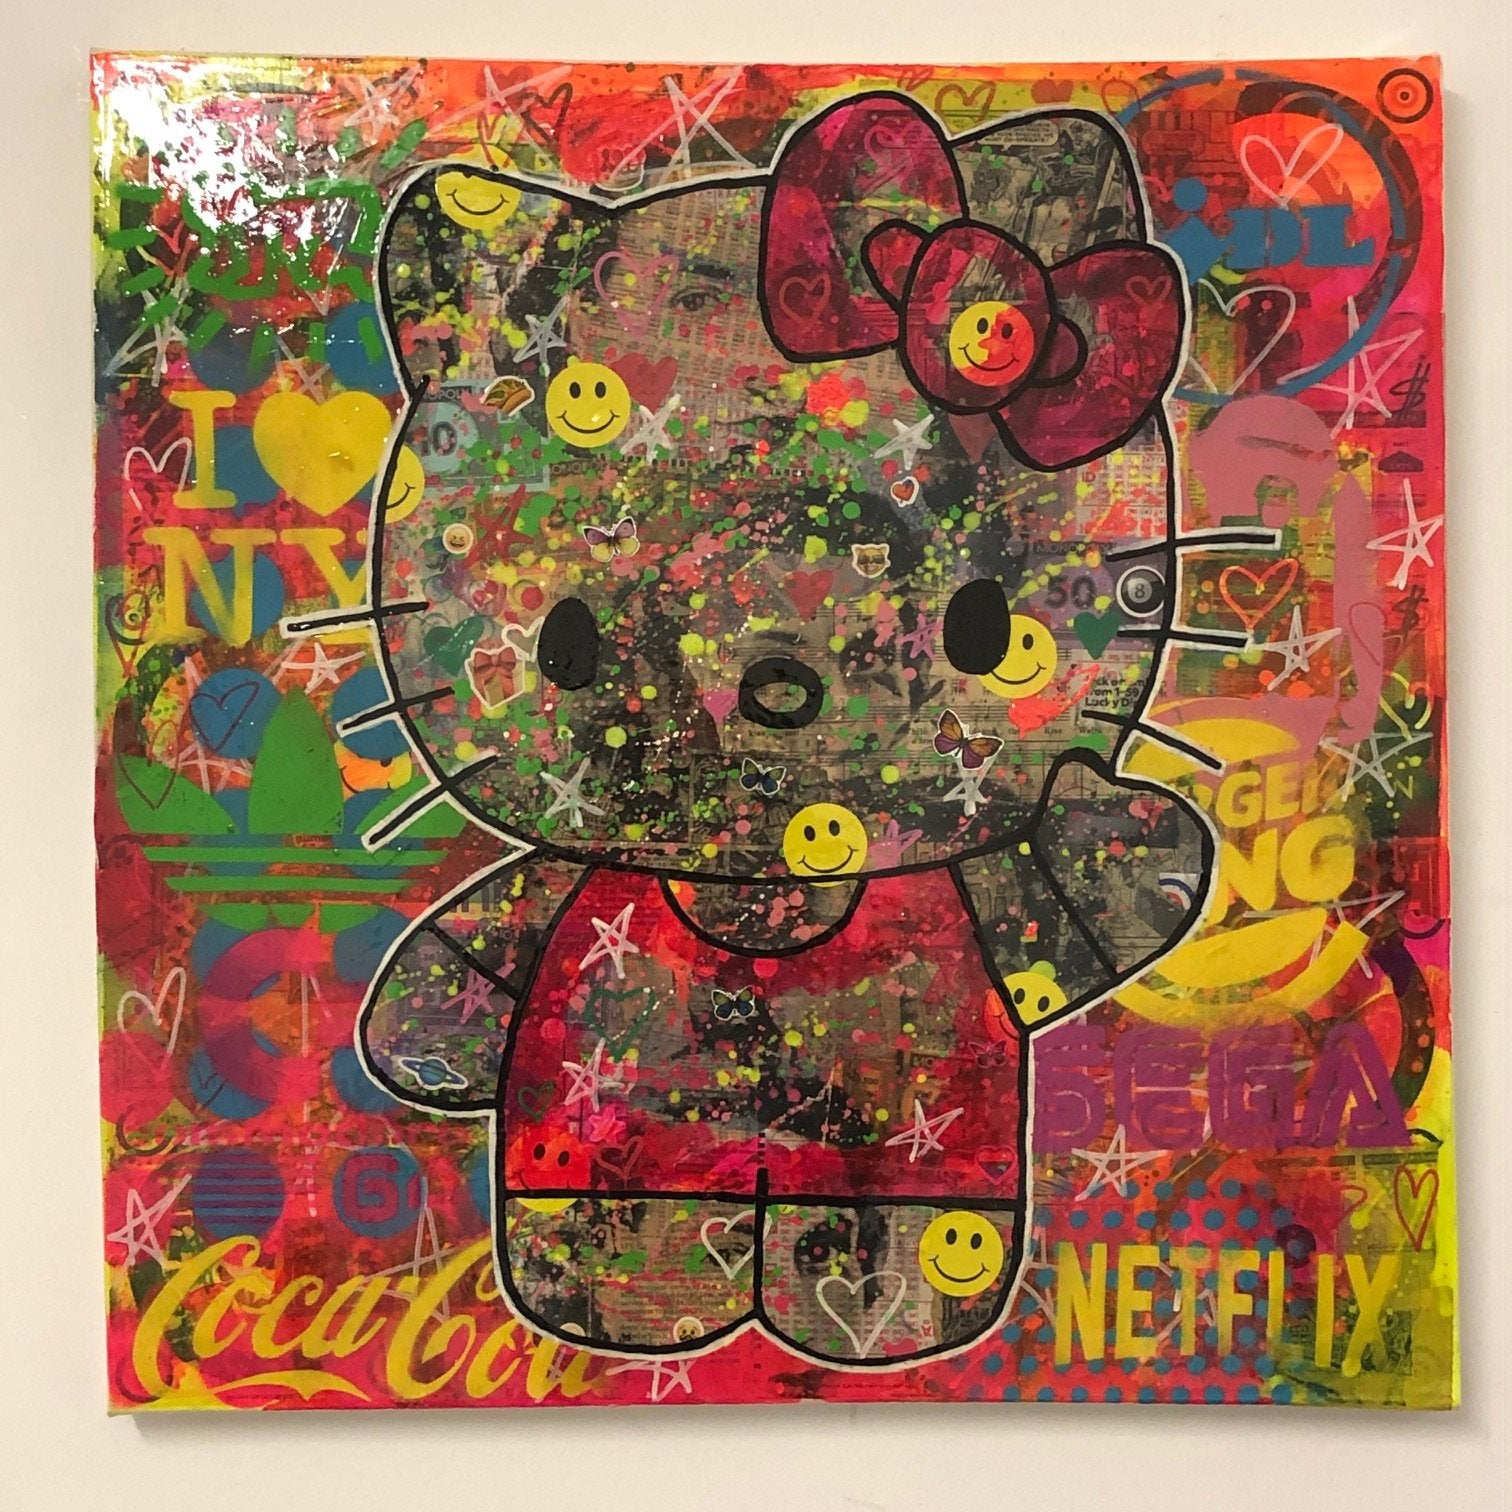 Psycho kitty by Barrie J Davies 2020, Mixed media on Canvas, 60cm x 60cm, Unframed. Barrie J Davies is an Artist - Urban Pop Art and Street art inspired Artist based in Brighton England UK - Shop Pop Art Paintings, Street Art Prints & collectables